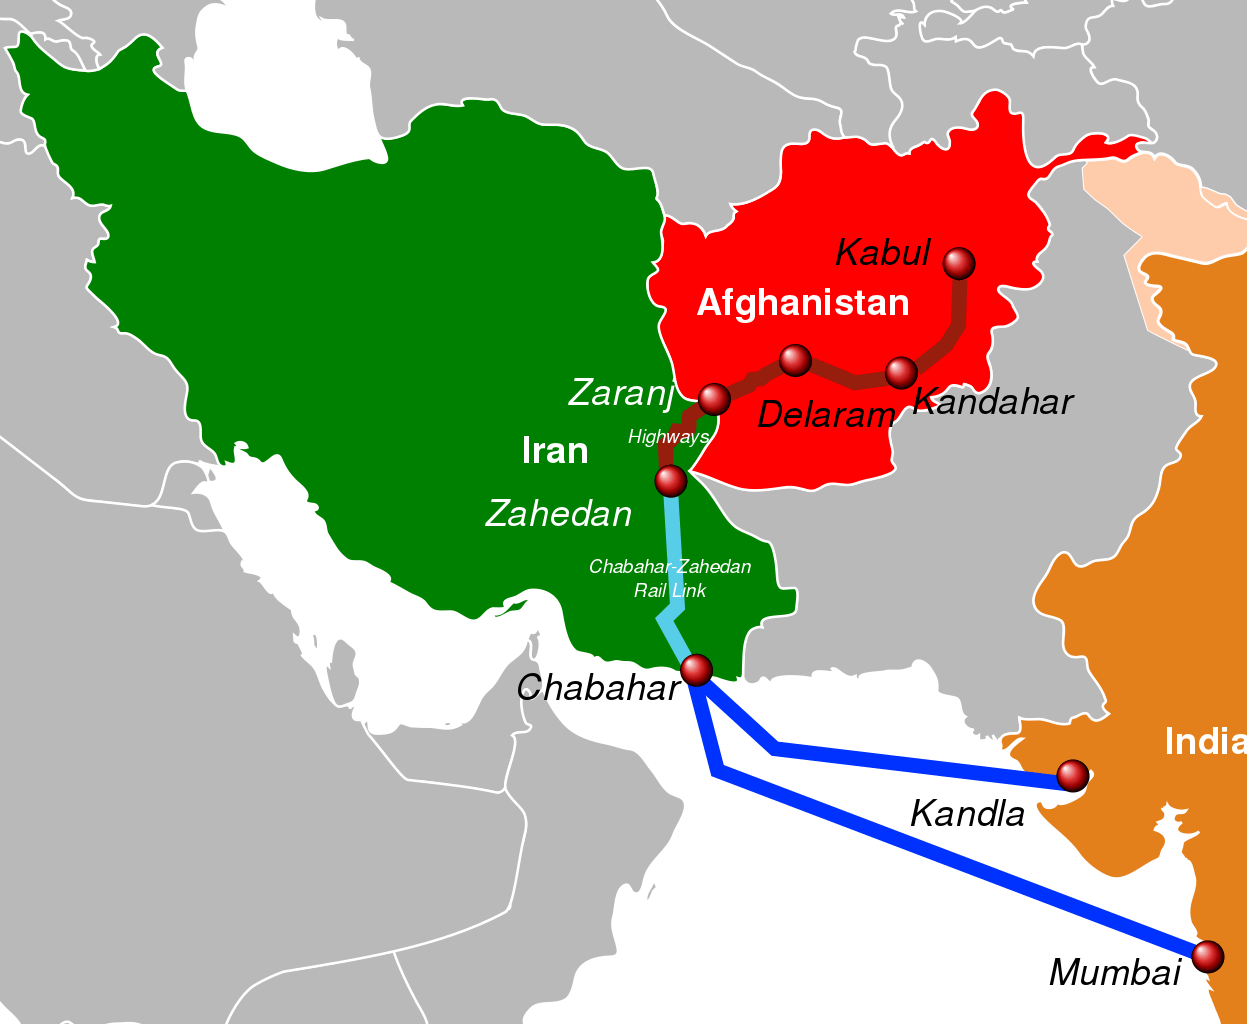 Making Sense Of Keeping Chabahar Out Of Us Sanctions The Geopolitics - India-us-map